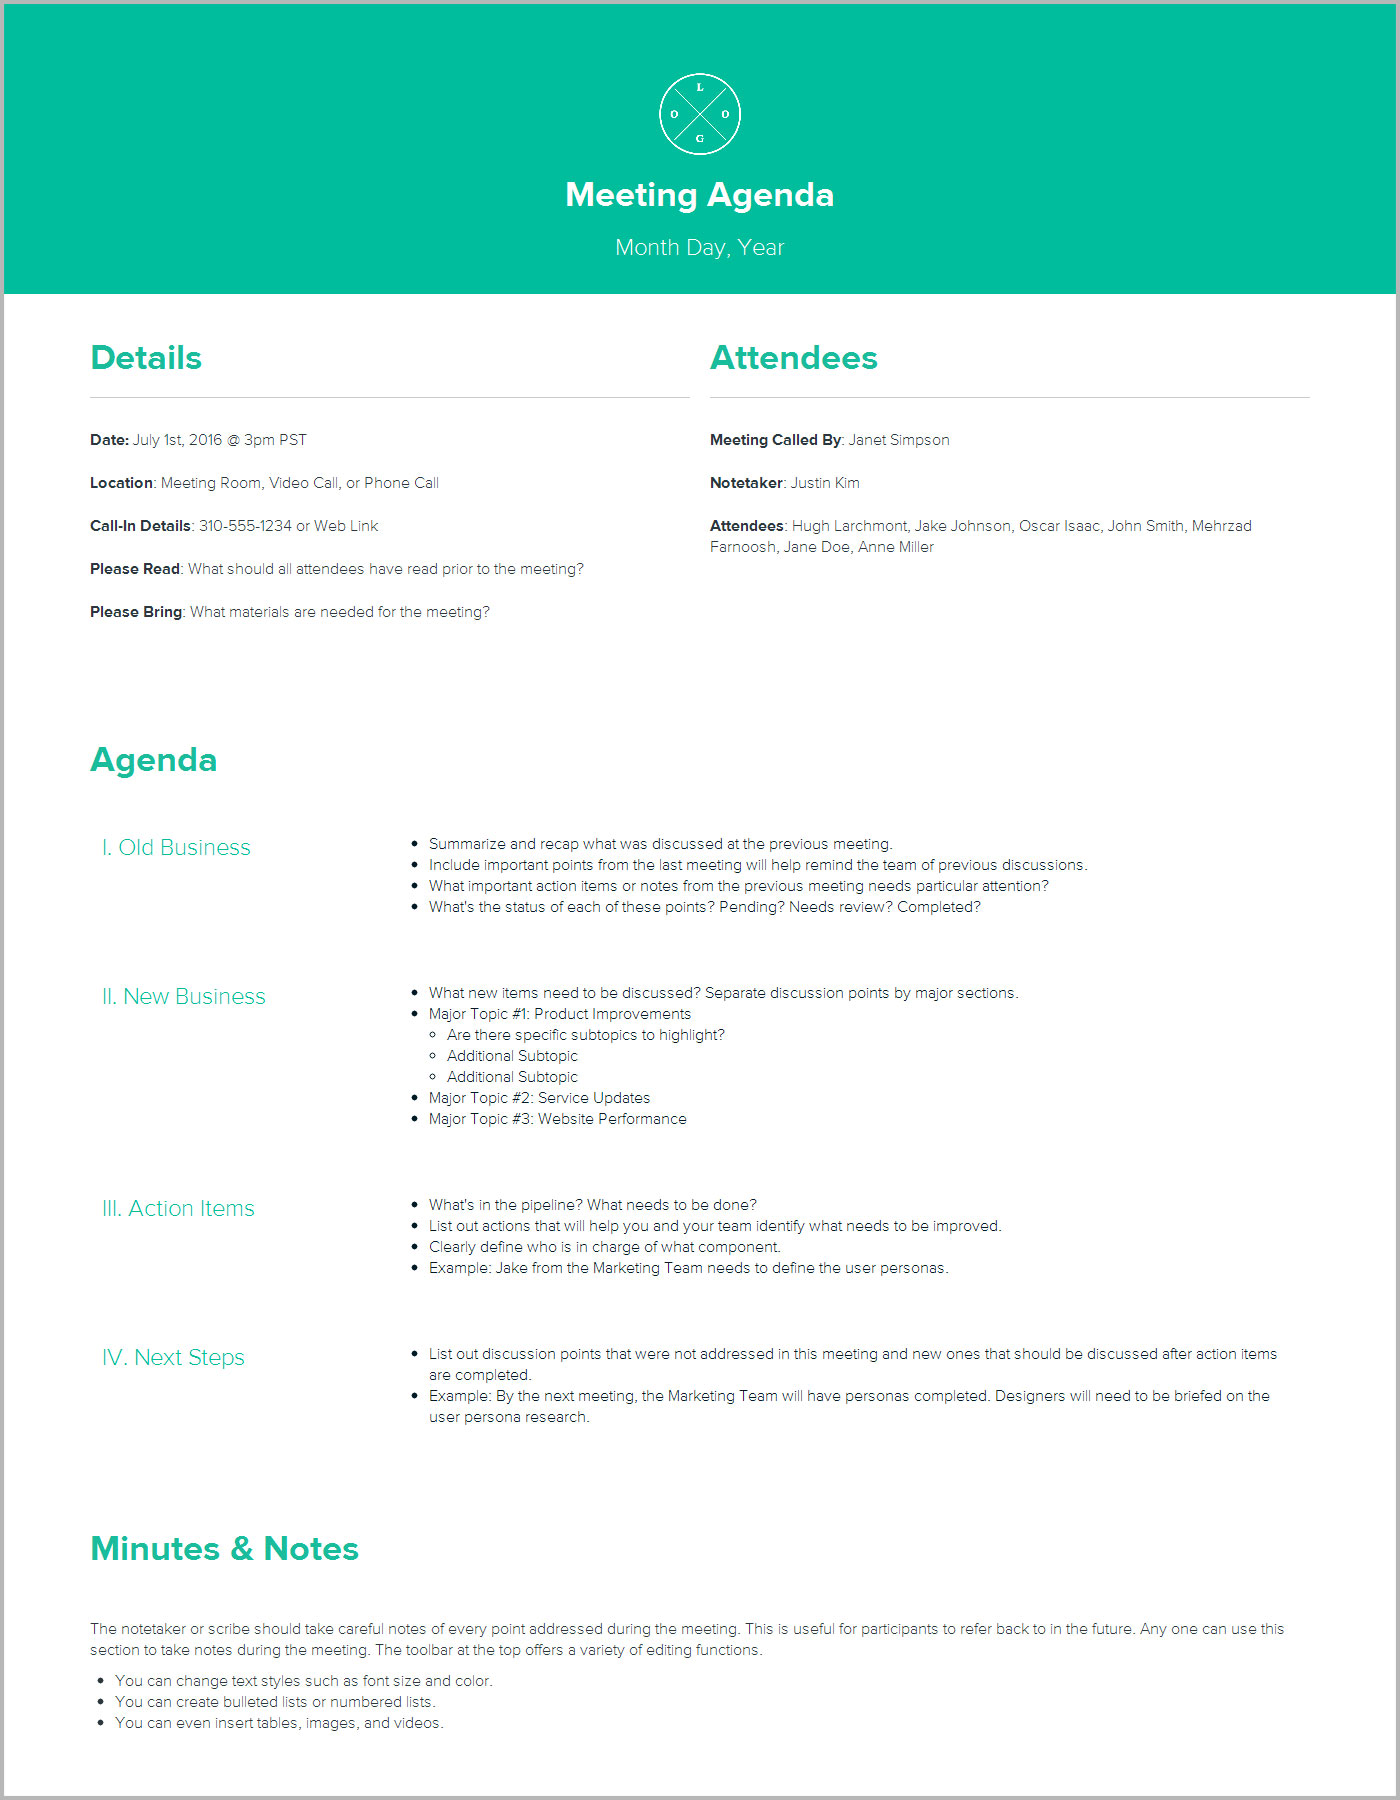 Meeting Agenda Template By Xtensio  Agenda Layout Examples